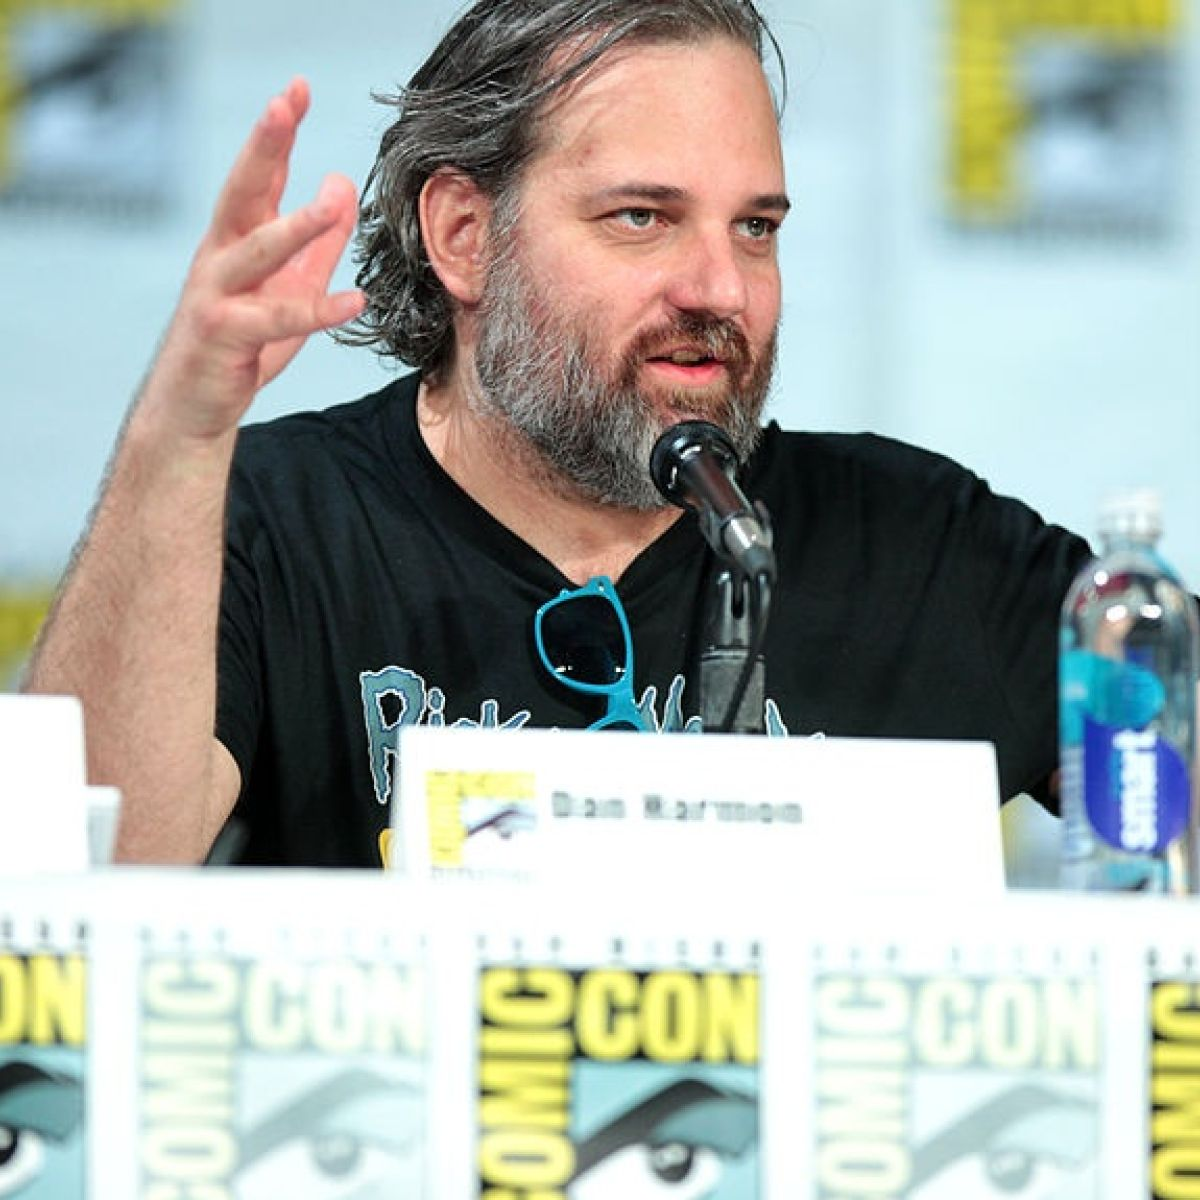 Dan Harmon, 'Rick and Morty' creator, apologises after